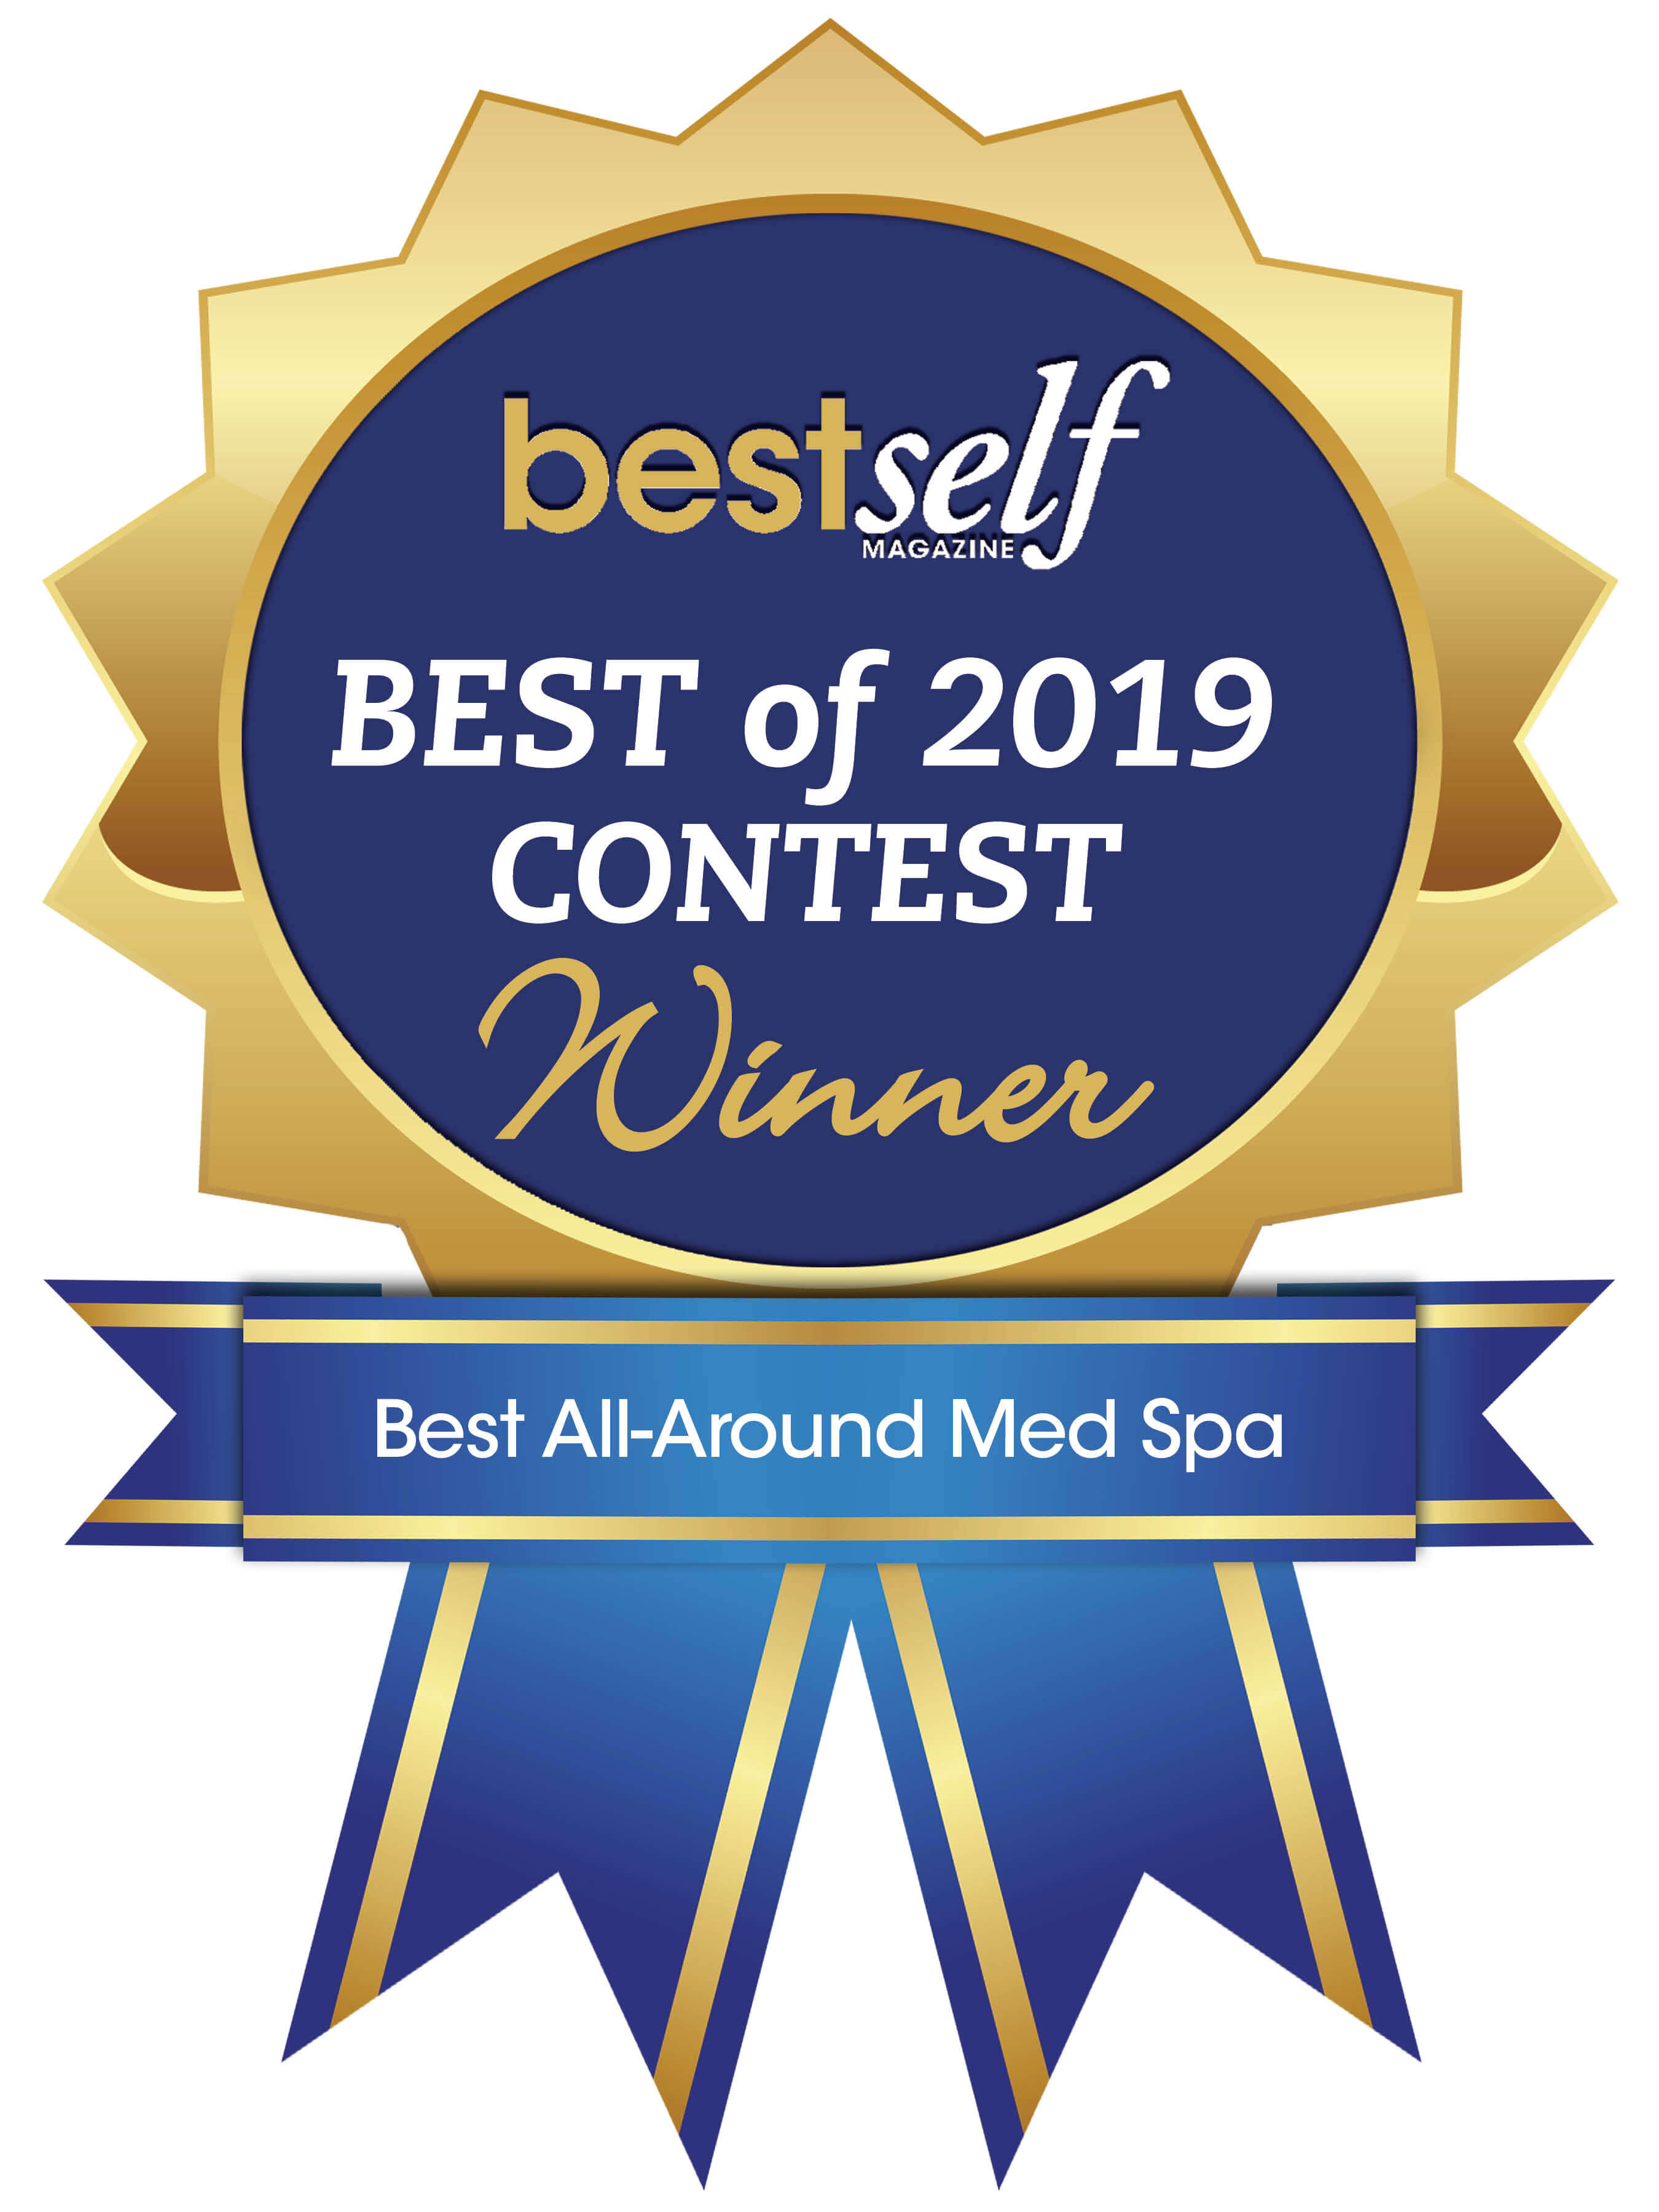 Best Self Ribbon 2019 for Aesthetic Body Sculpture Clinic and Center for Anti-Aging